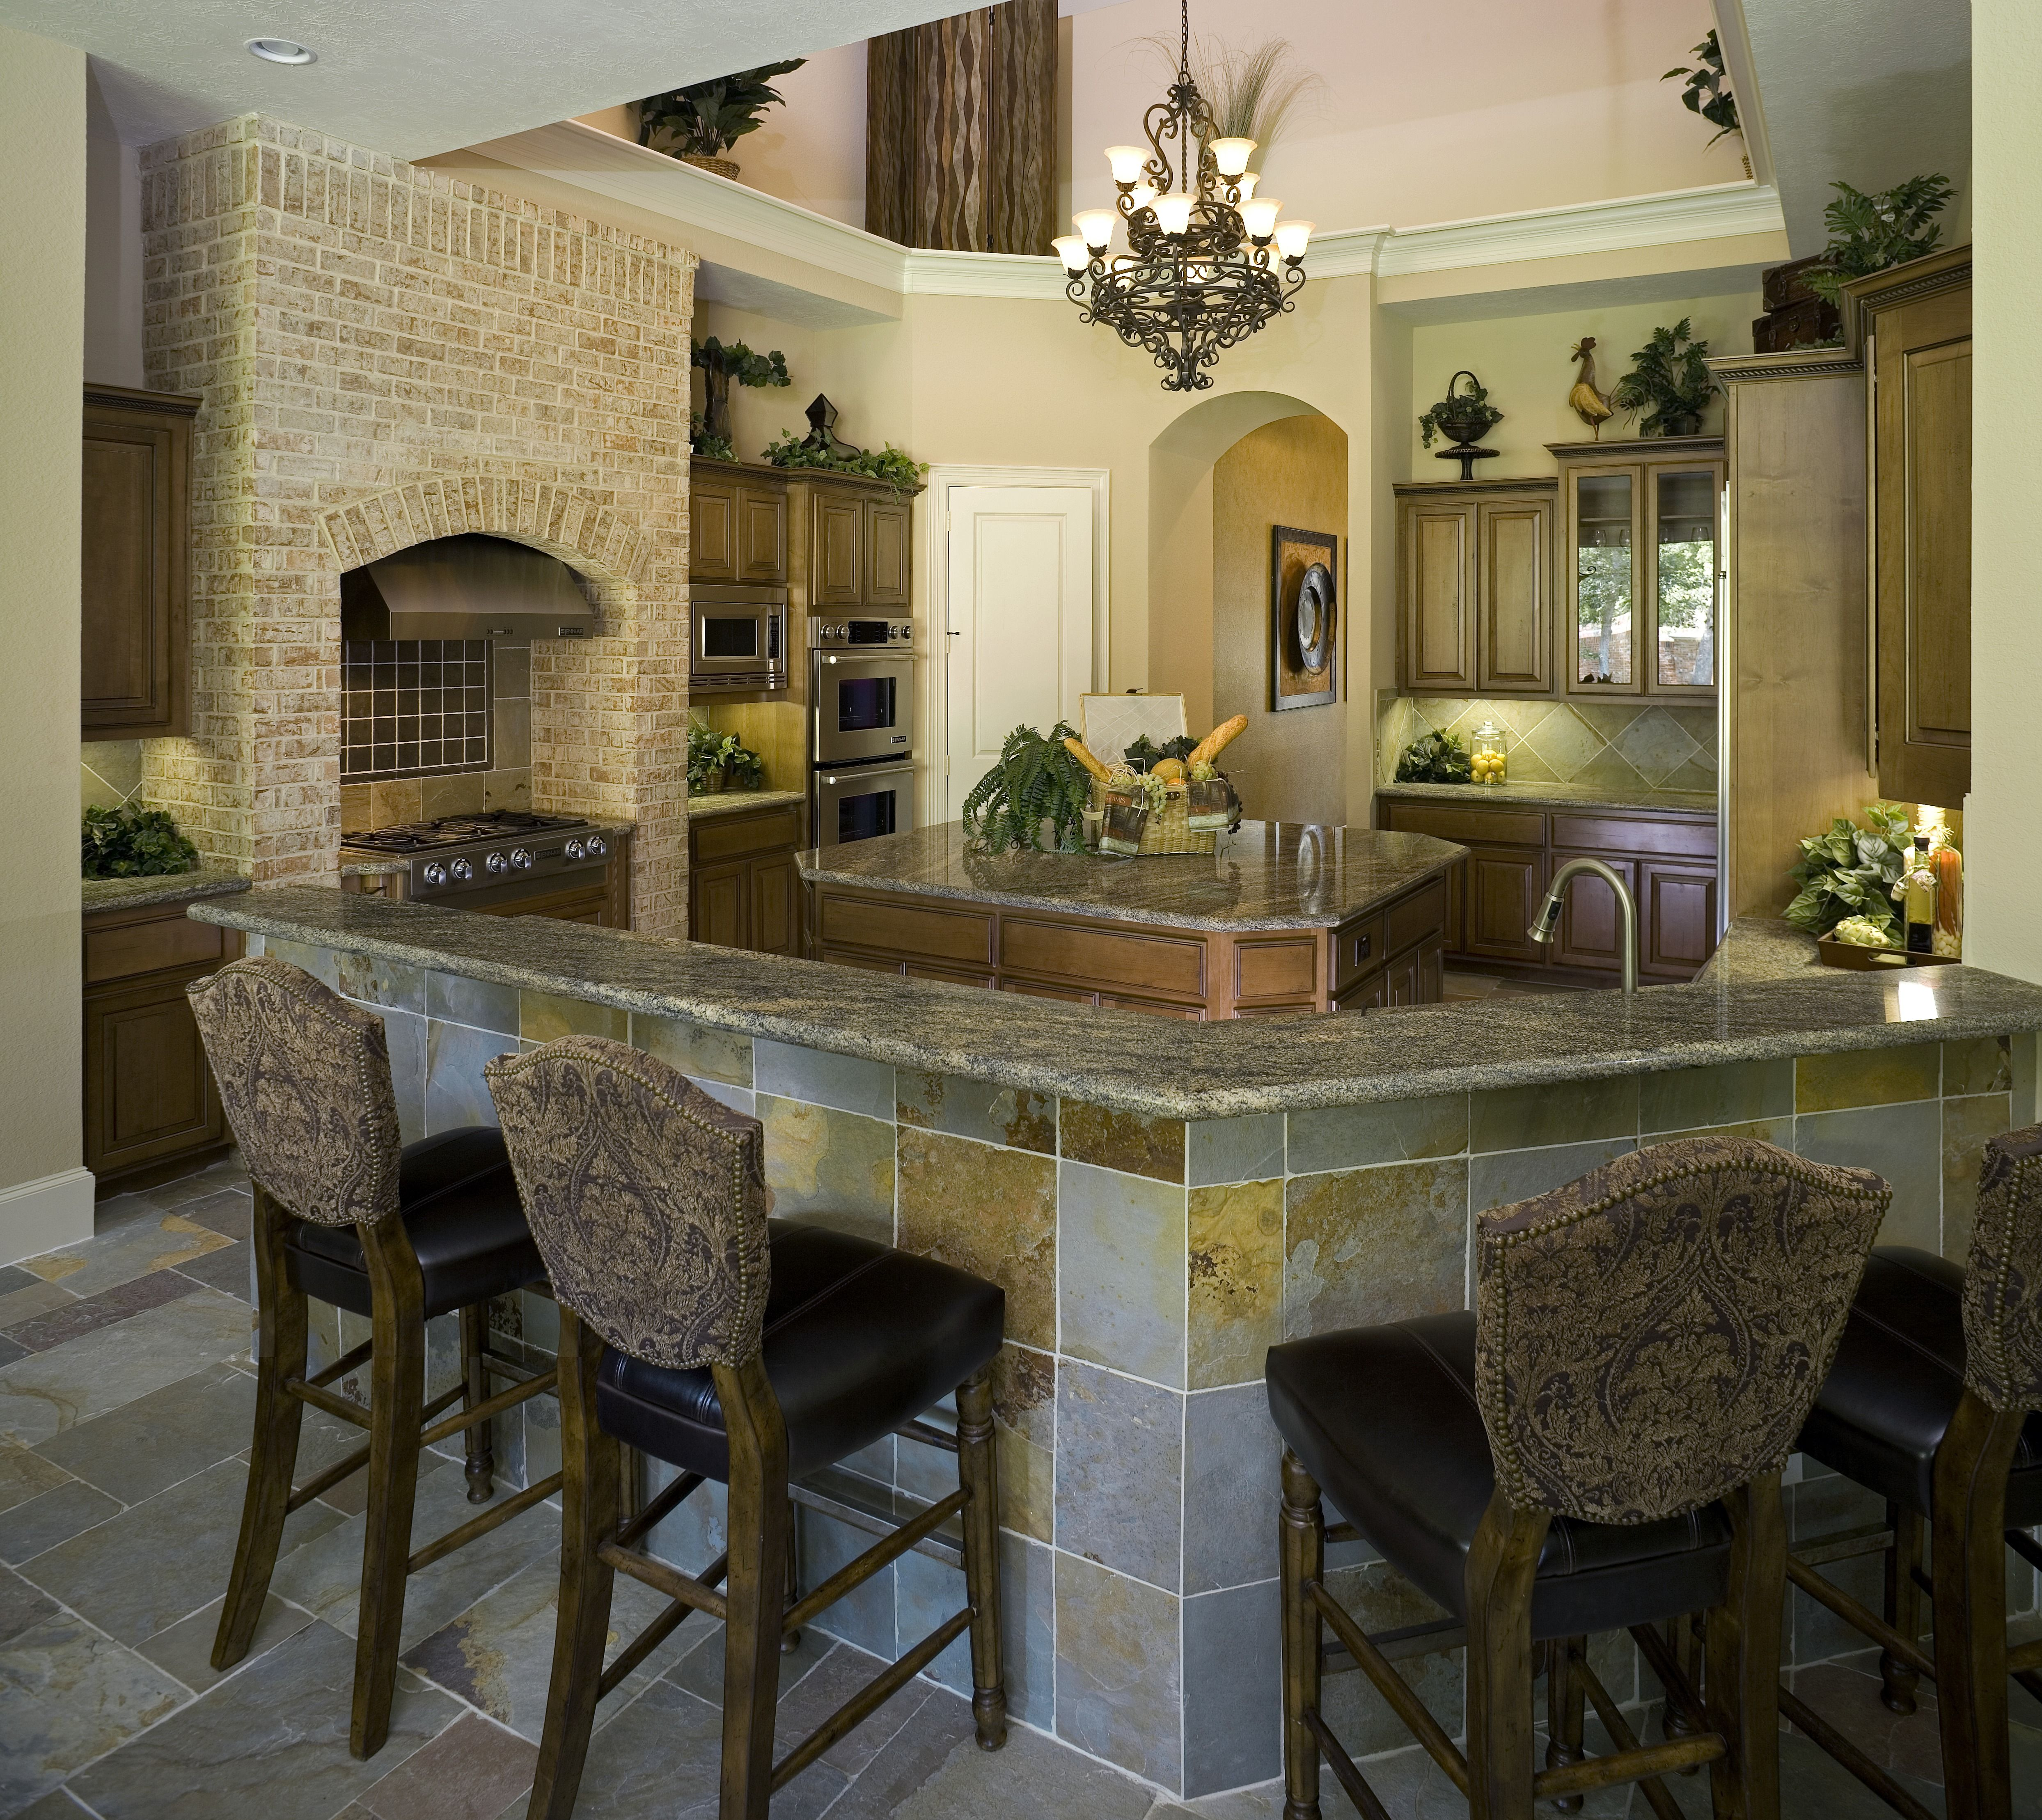 Phenomenal Traditional Kitchen Design Ideas: 5 DIY Kitchen Remodeling Ideas That Make A Difference